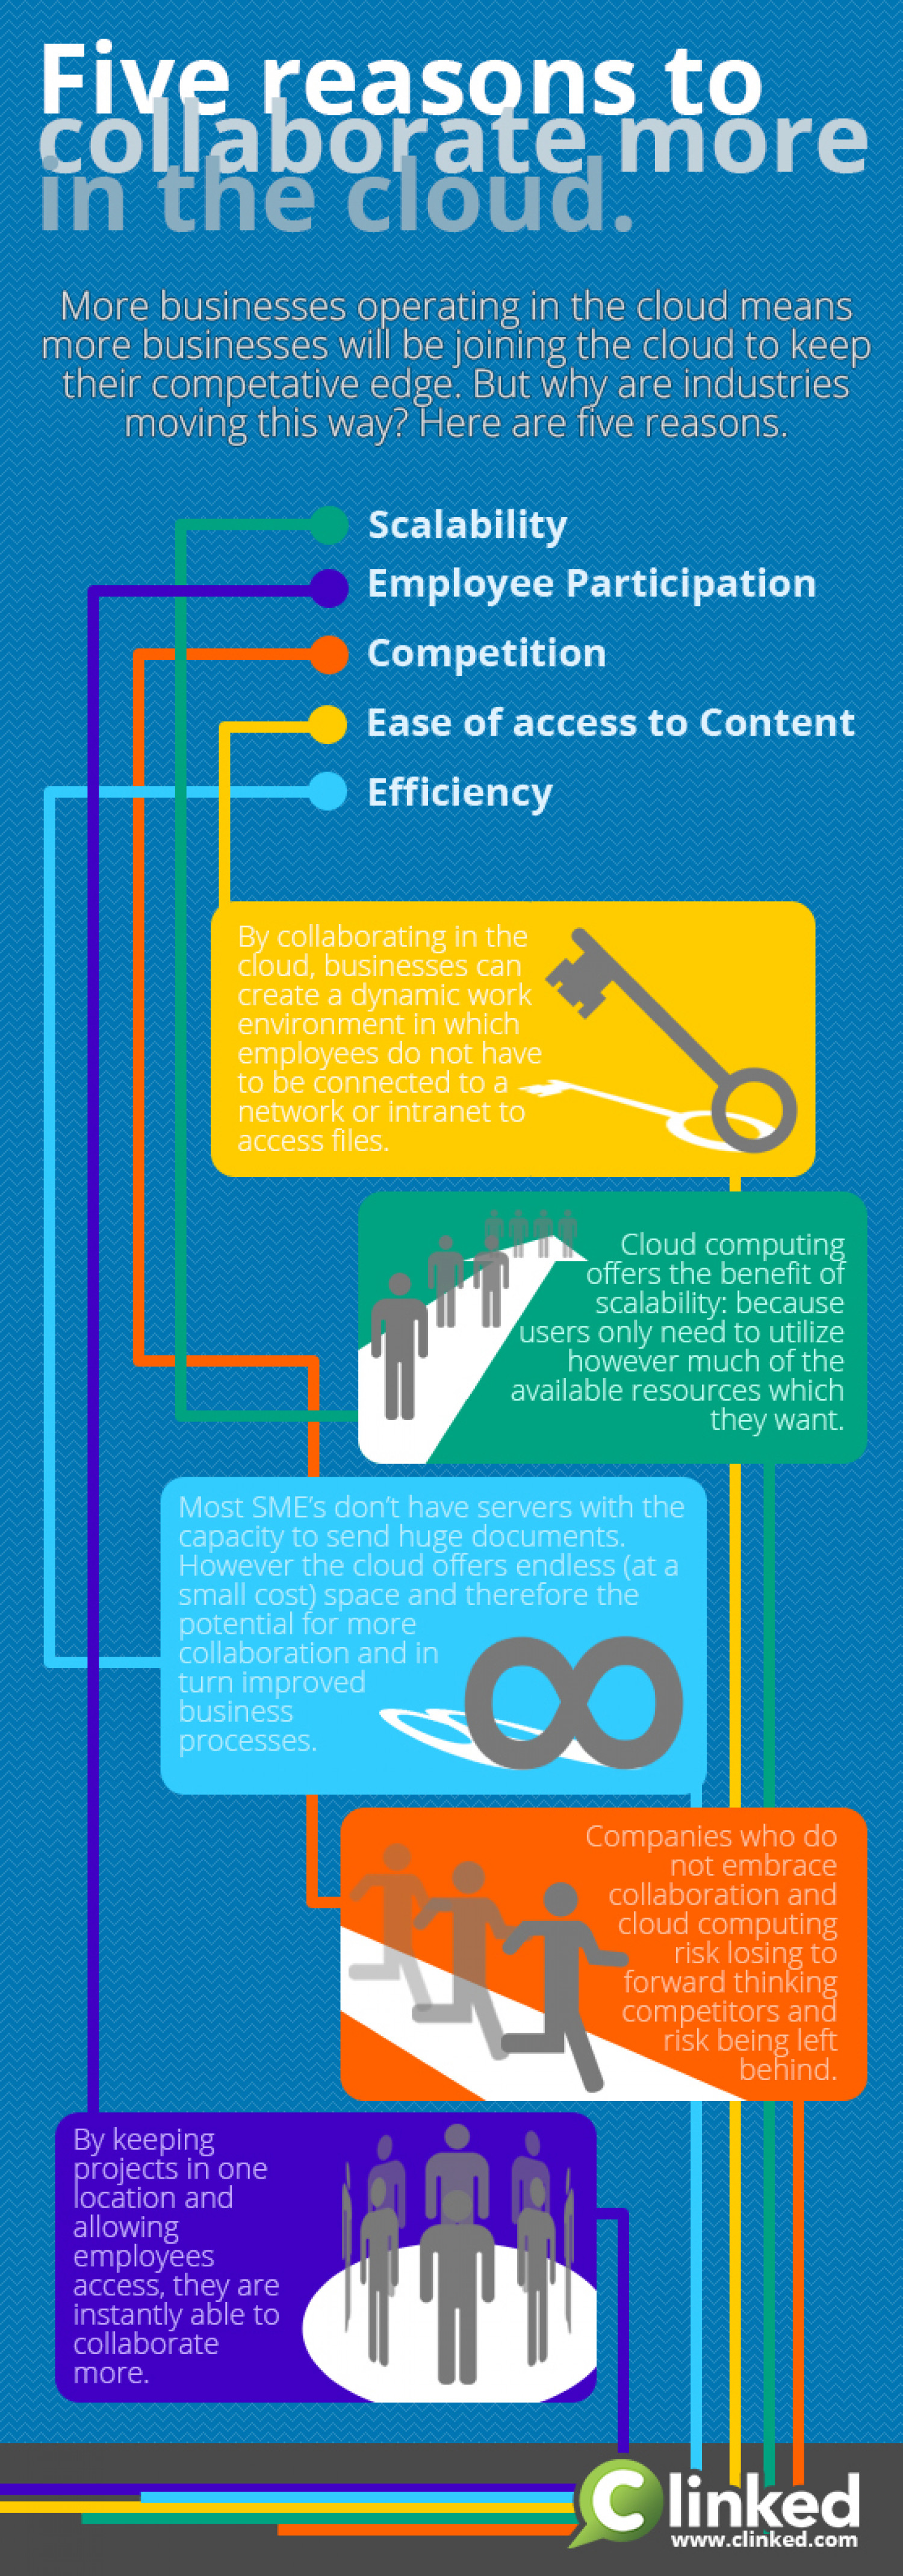 Five reasons to collaborate more in the Cloud Infographic